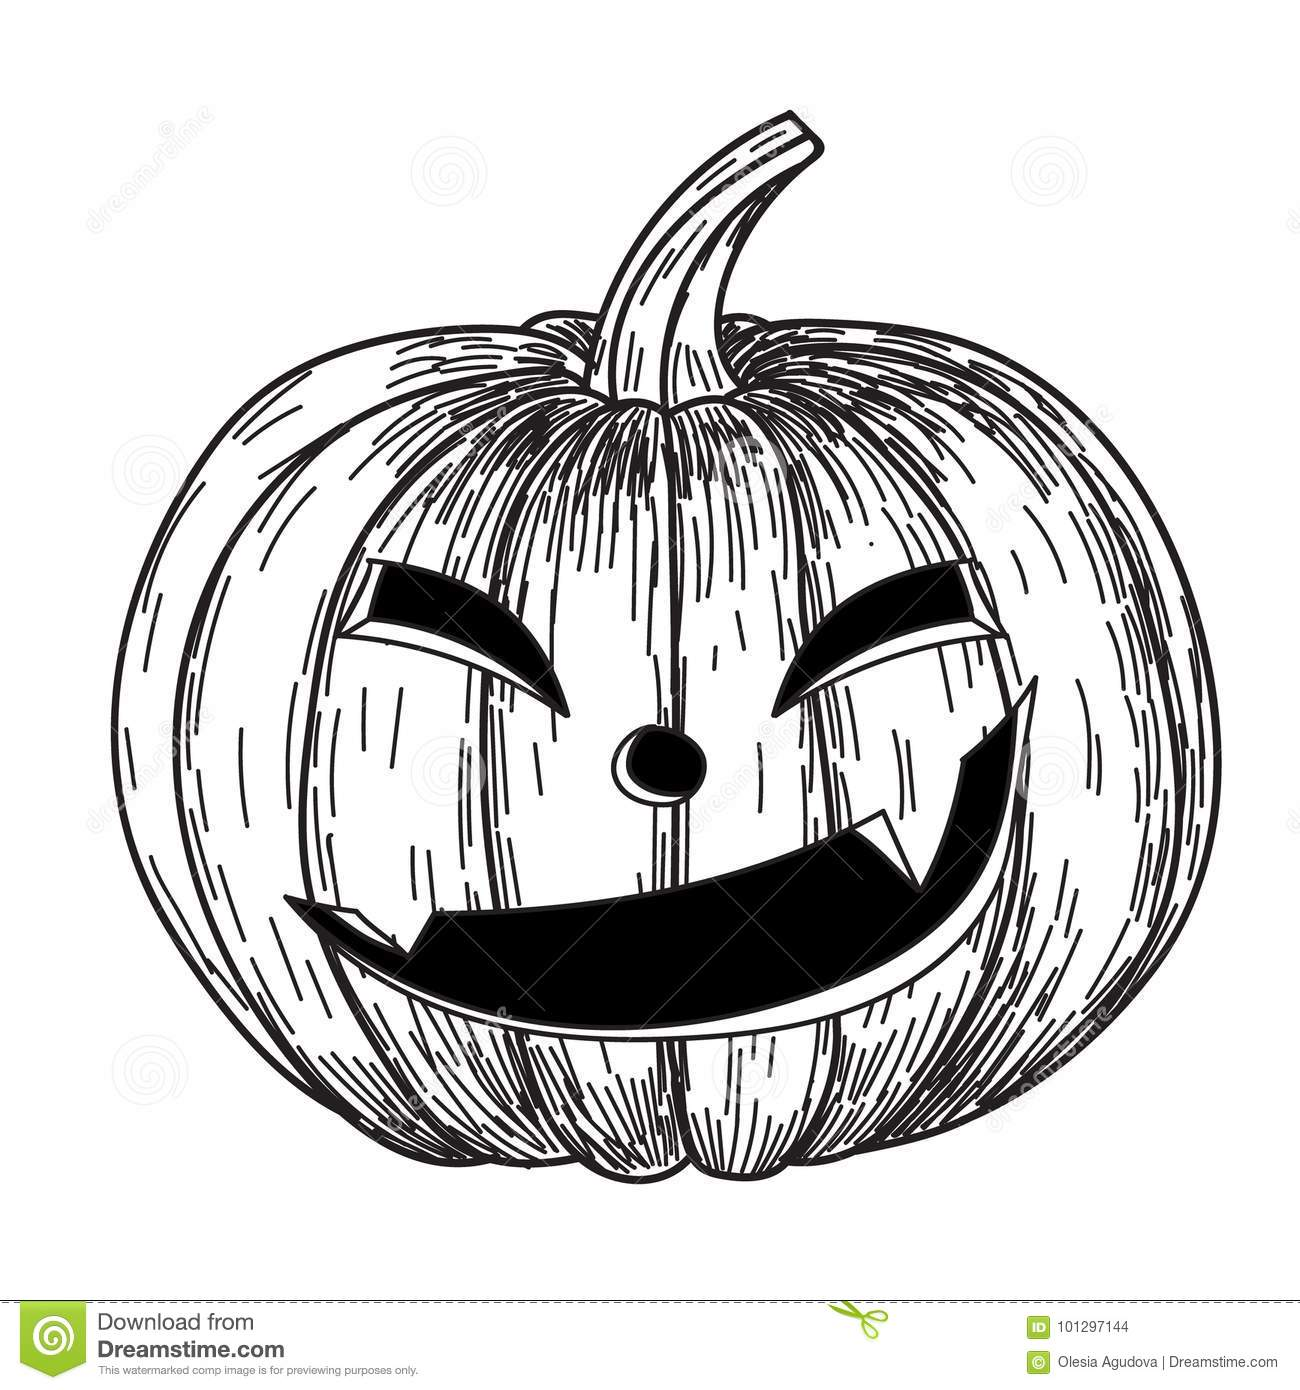 Creepy Halloween Pumpkin Drawings.Halloween Pumpkin With Evil Scary Smile In Funny Hand